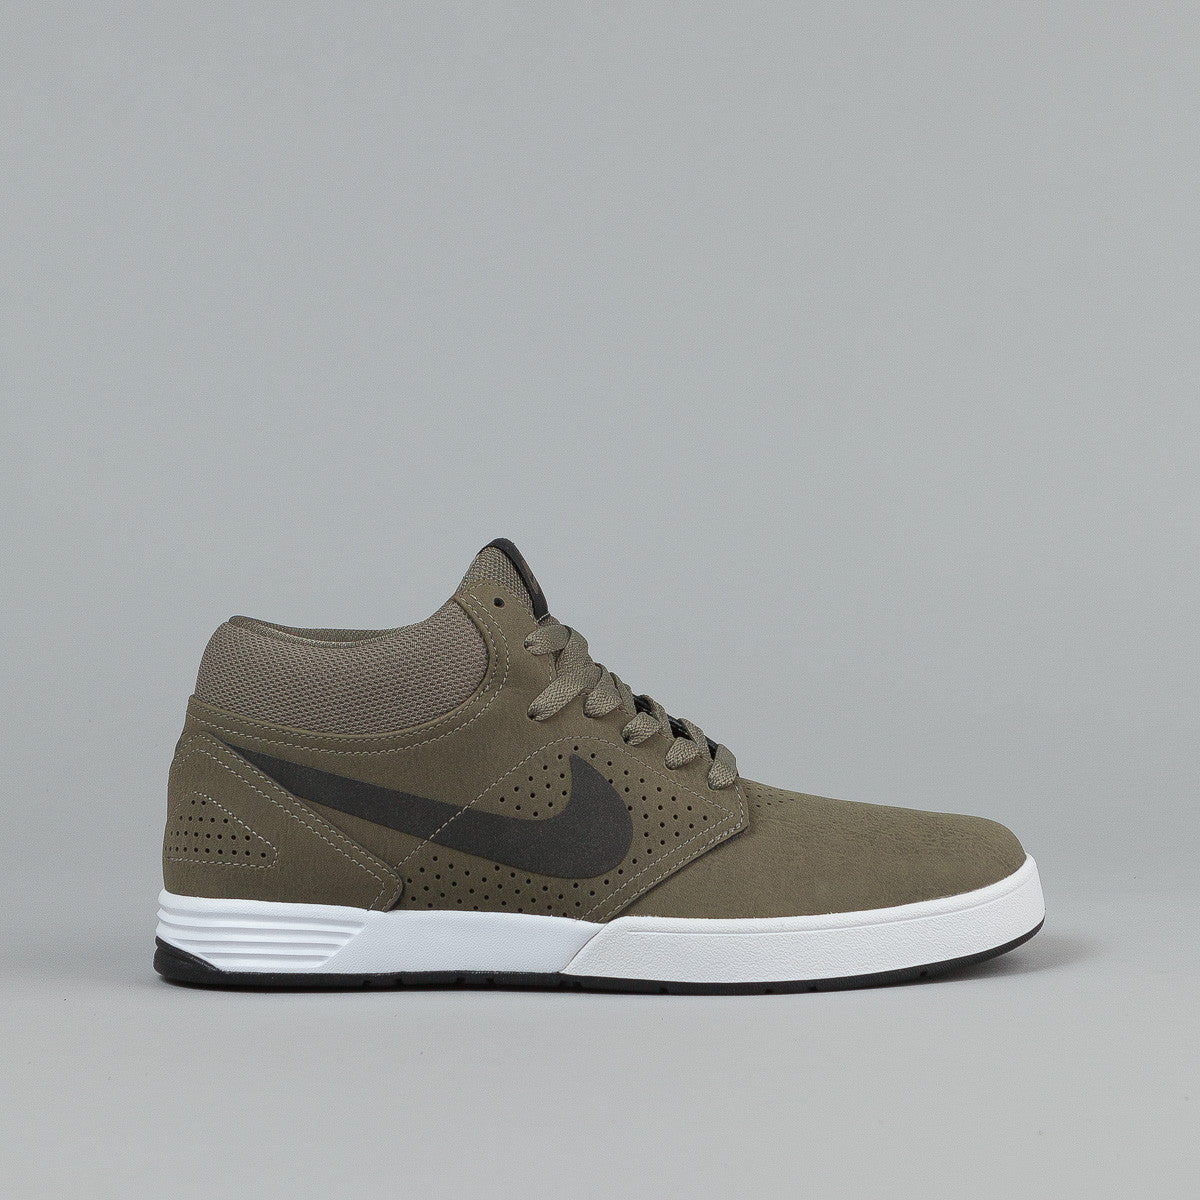 Nike SB Paul Rodriguez 5 MID Shoes